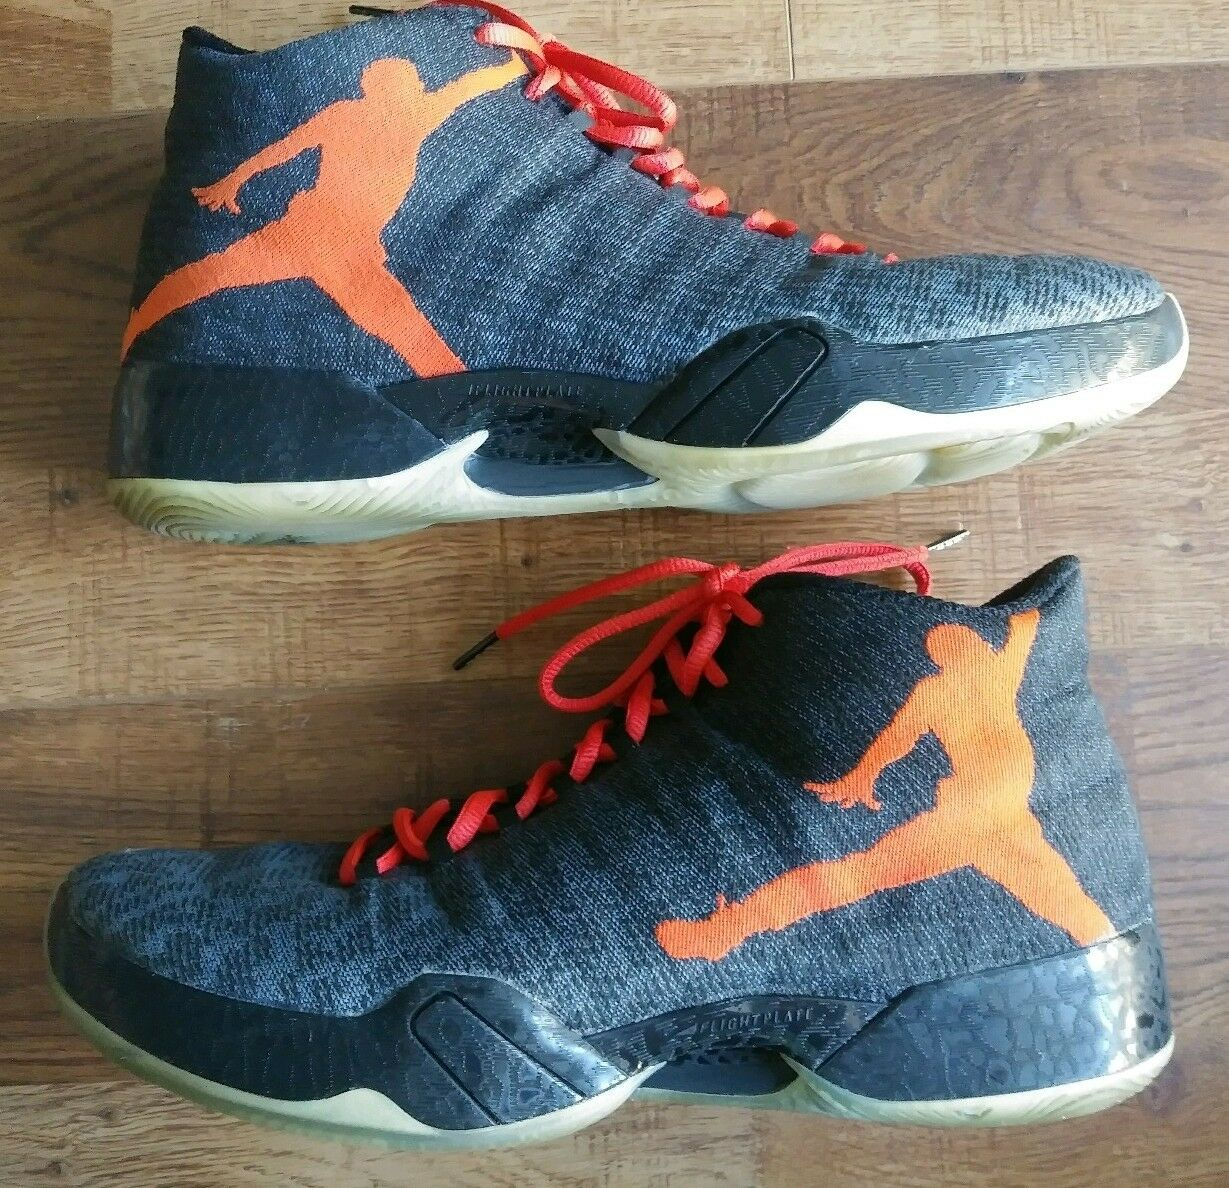 Nike Air Jordan 29 XX9 Team Orange Westbrook PE Size 10.5  (695515-005)